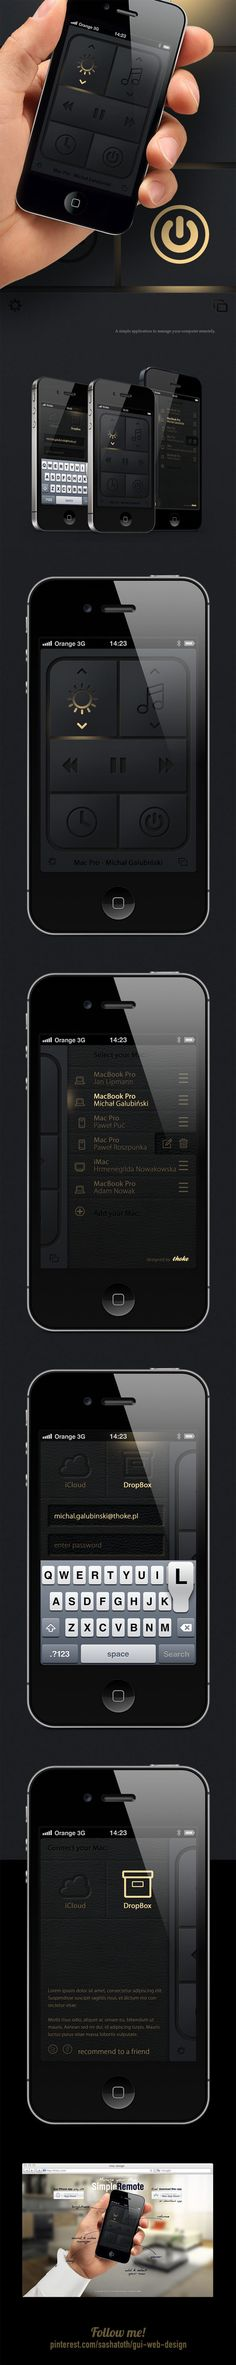 Simple mac remote (Concept) by Michal Galubinski, via Behance *** A simple application to manage your computer remotely.